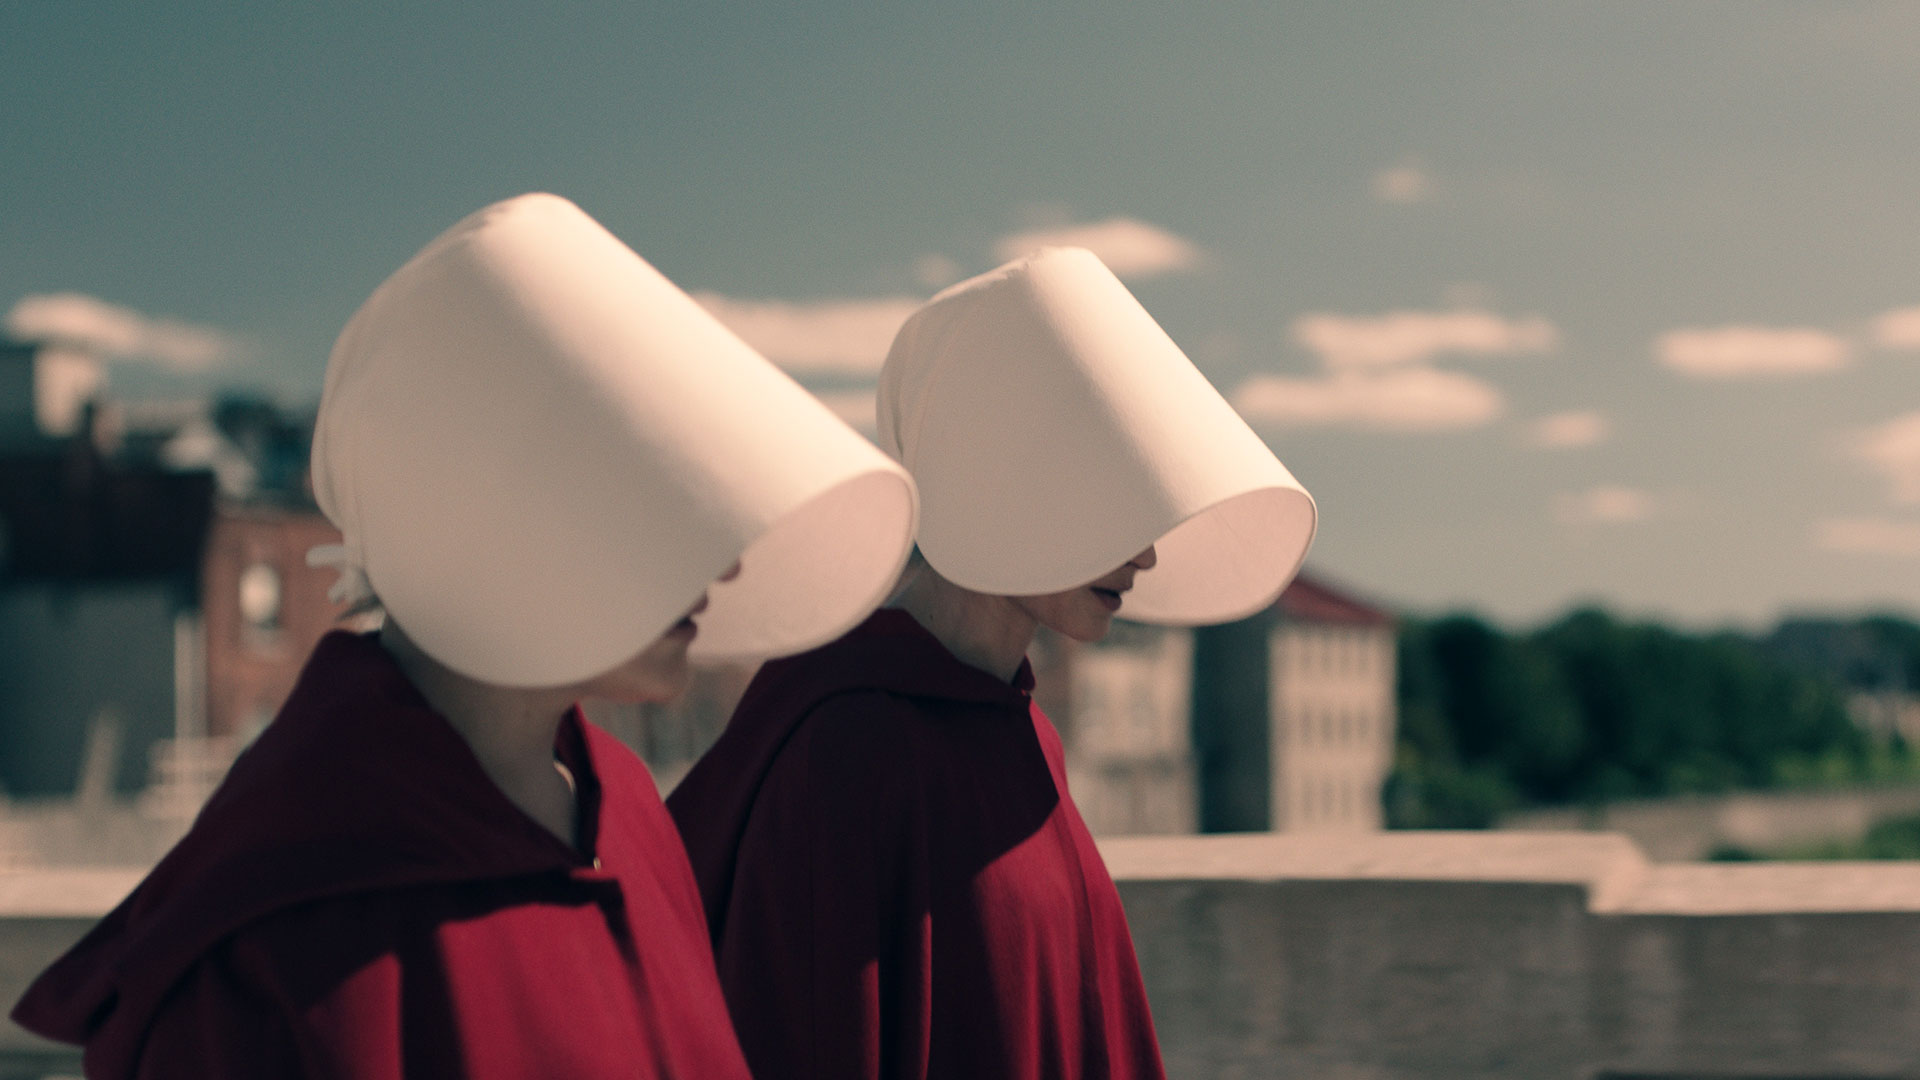 https://p3.no/filmpolitiet/wp-content/uploads/2017/04/the-handmaids-tale3.jpg